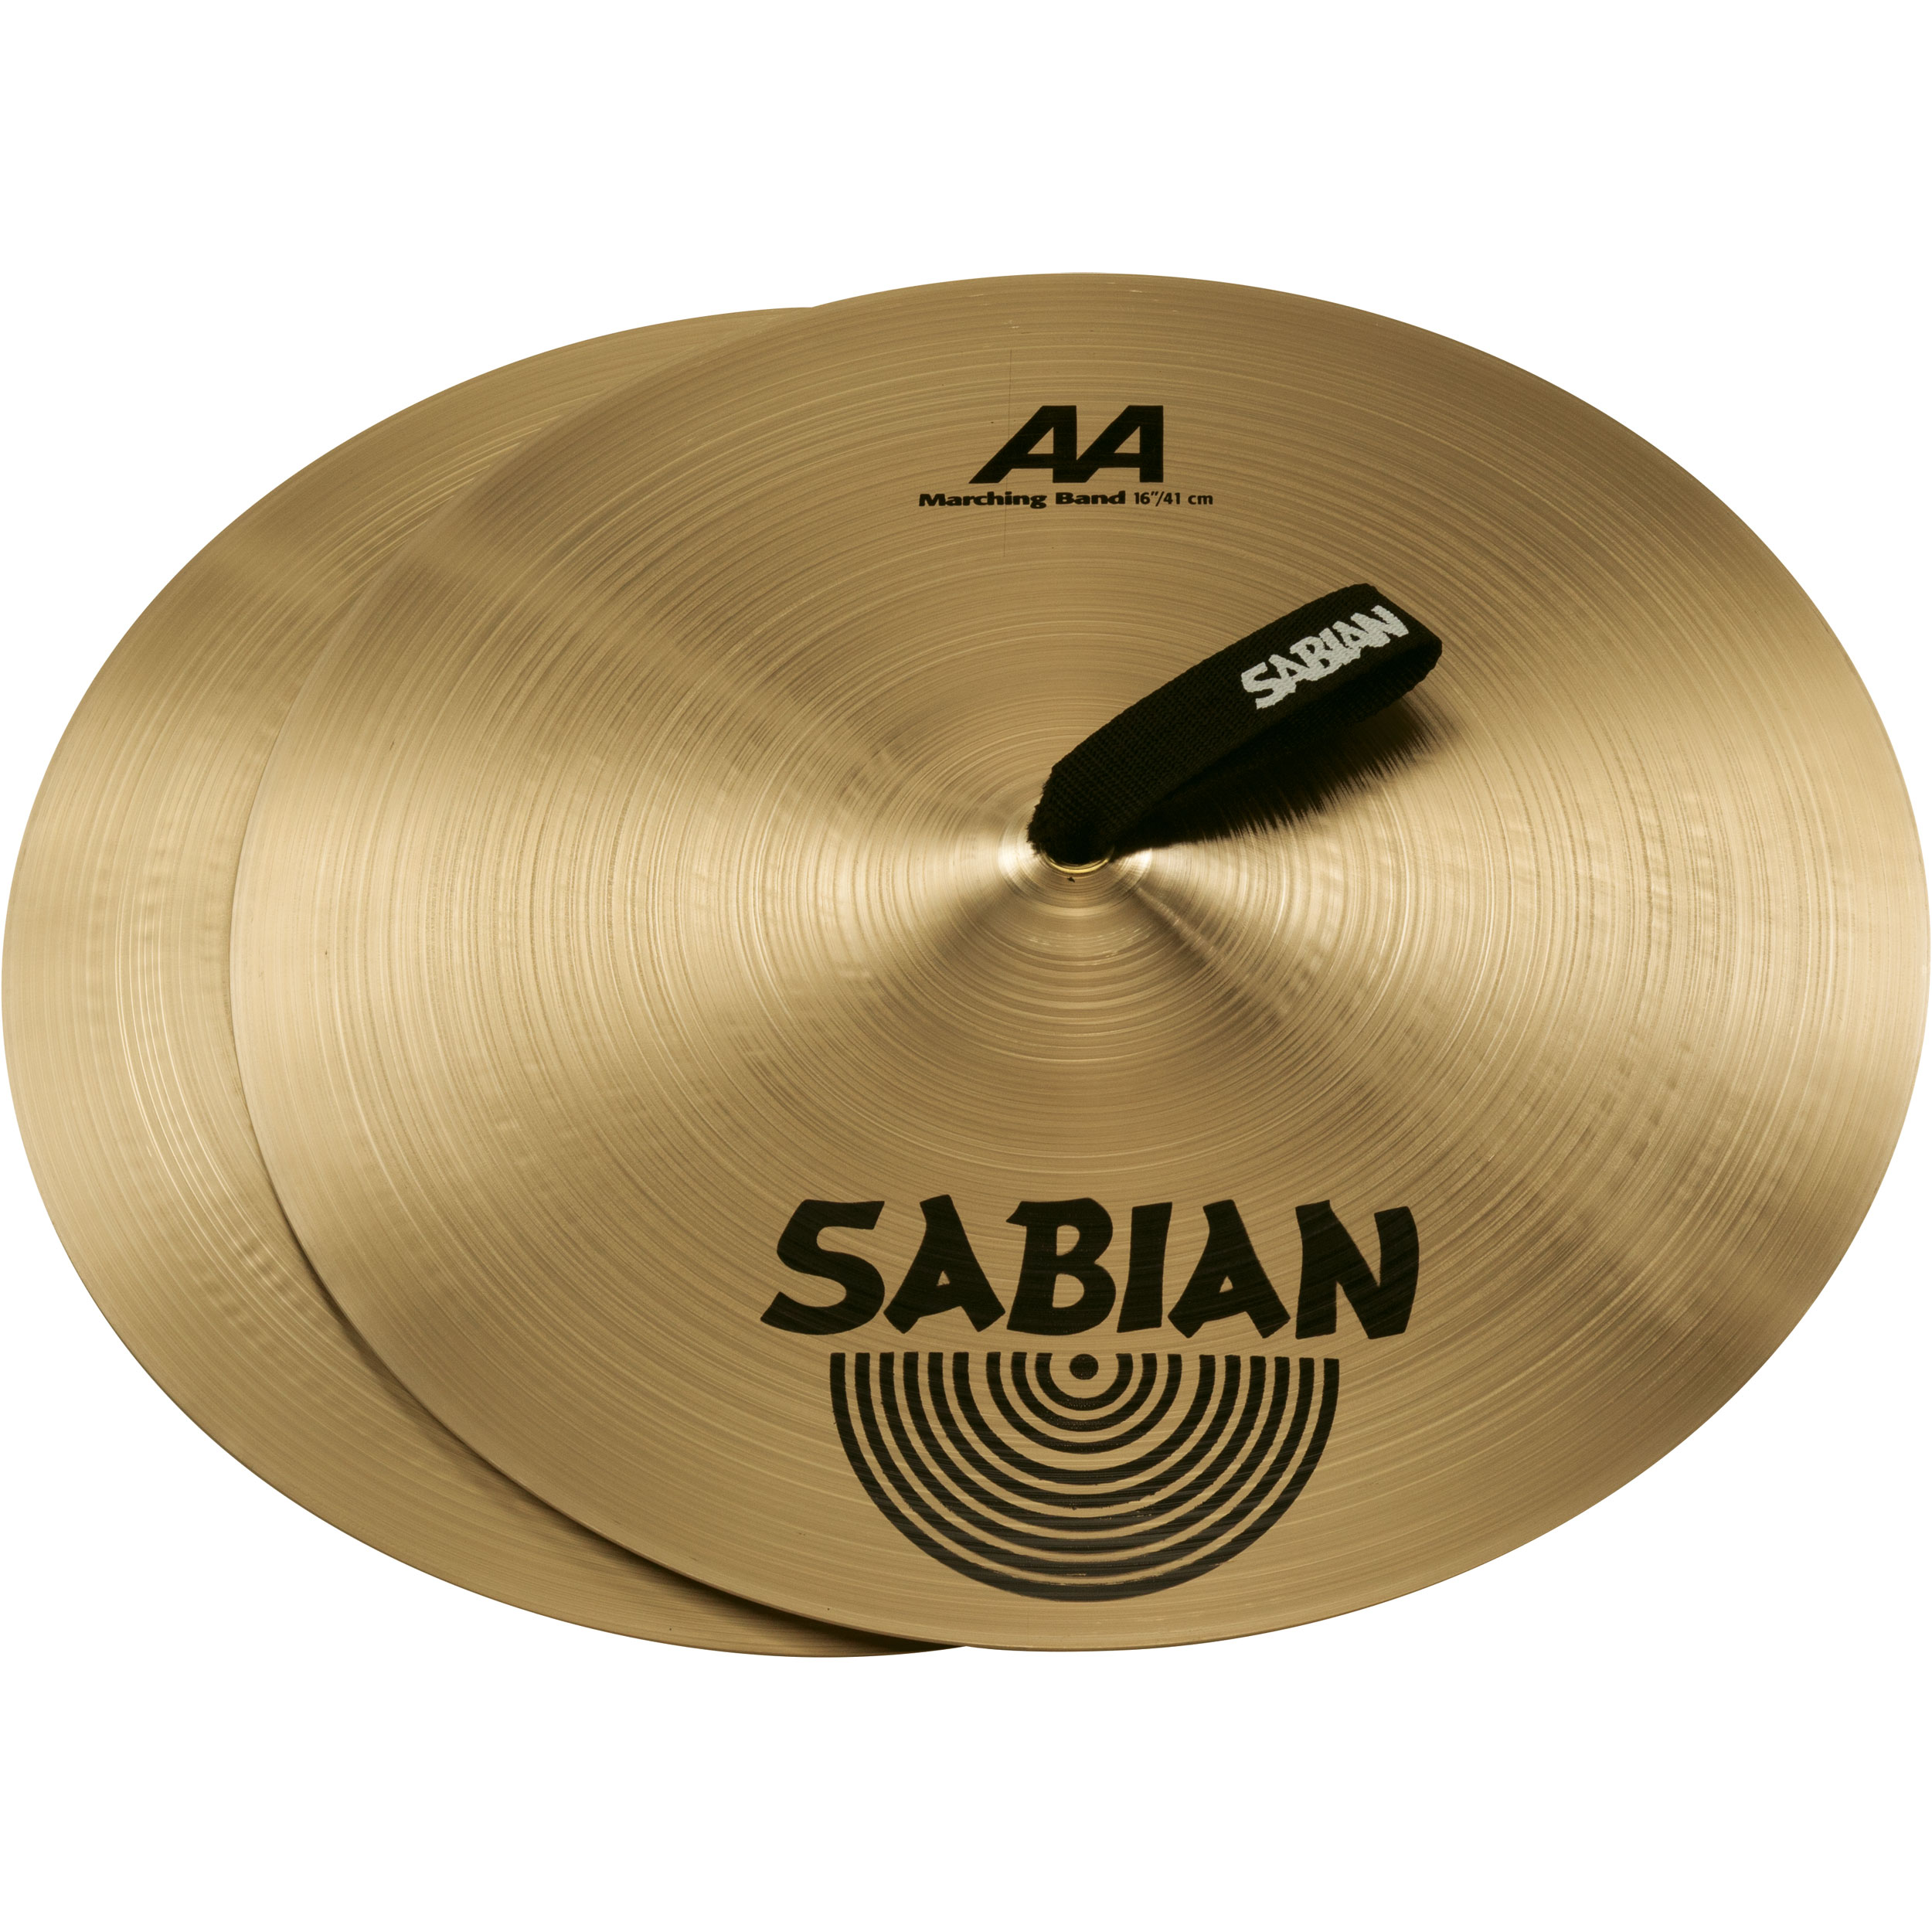 "Sabian 16"" AA Marching Band Hand Cymbal Pair"